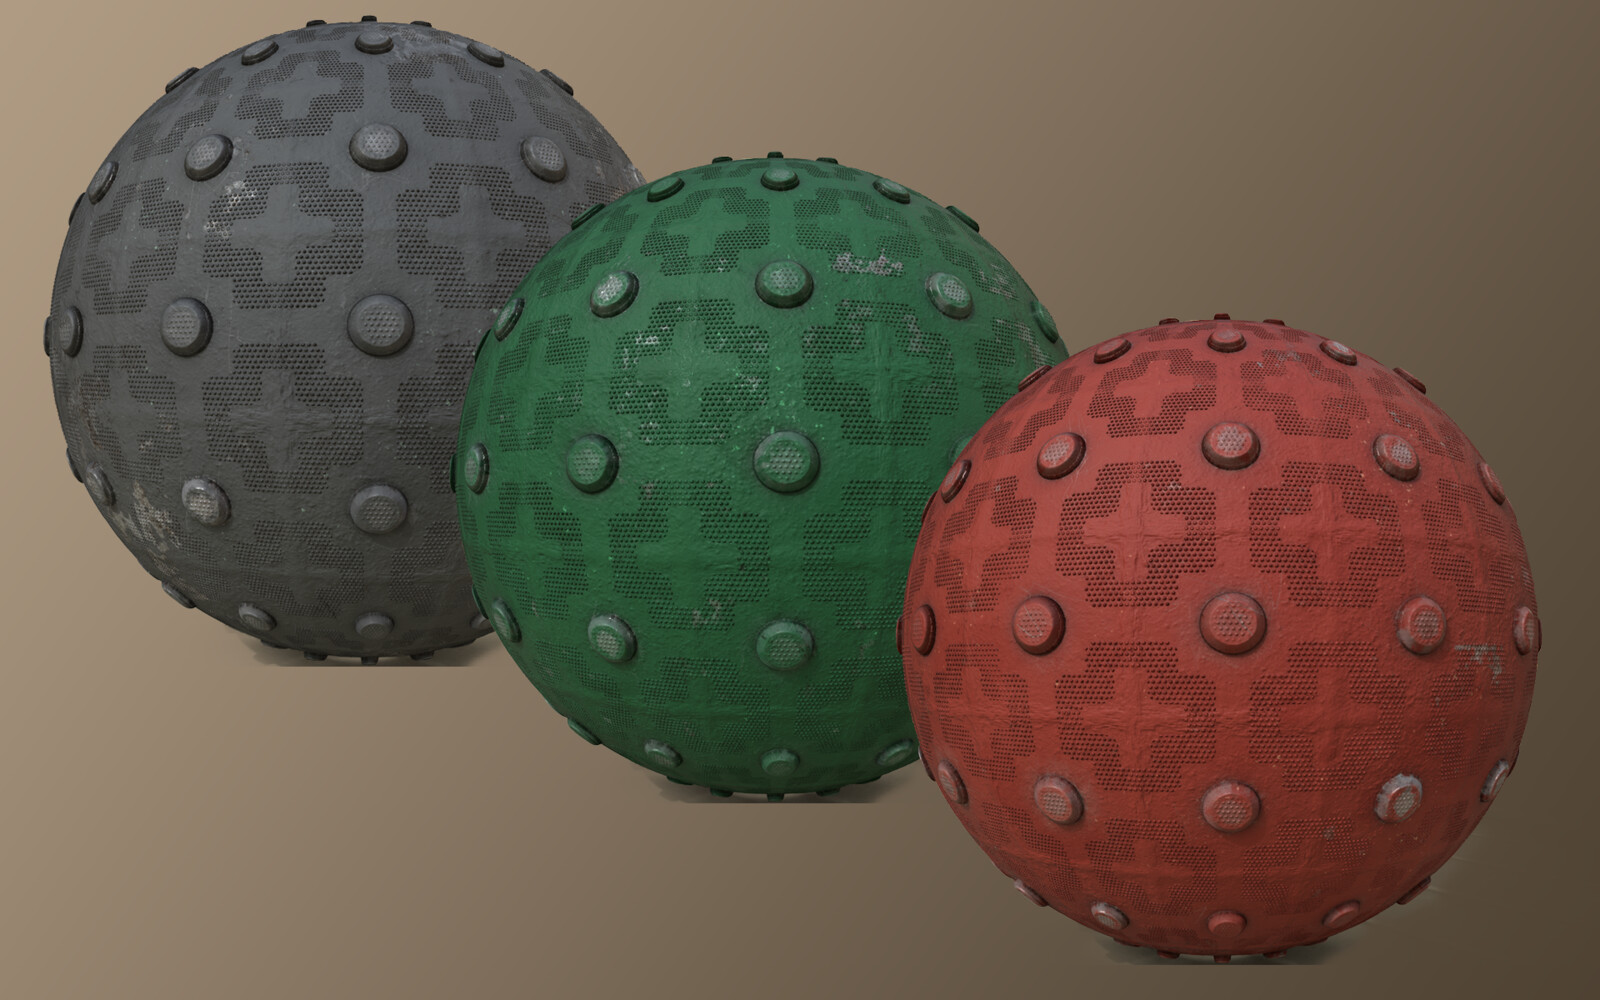 Examples of the exposed color parameter while also showing the variations of randomizing the wear&tear.